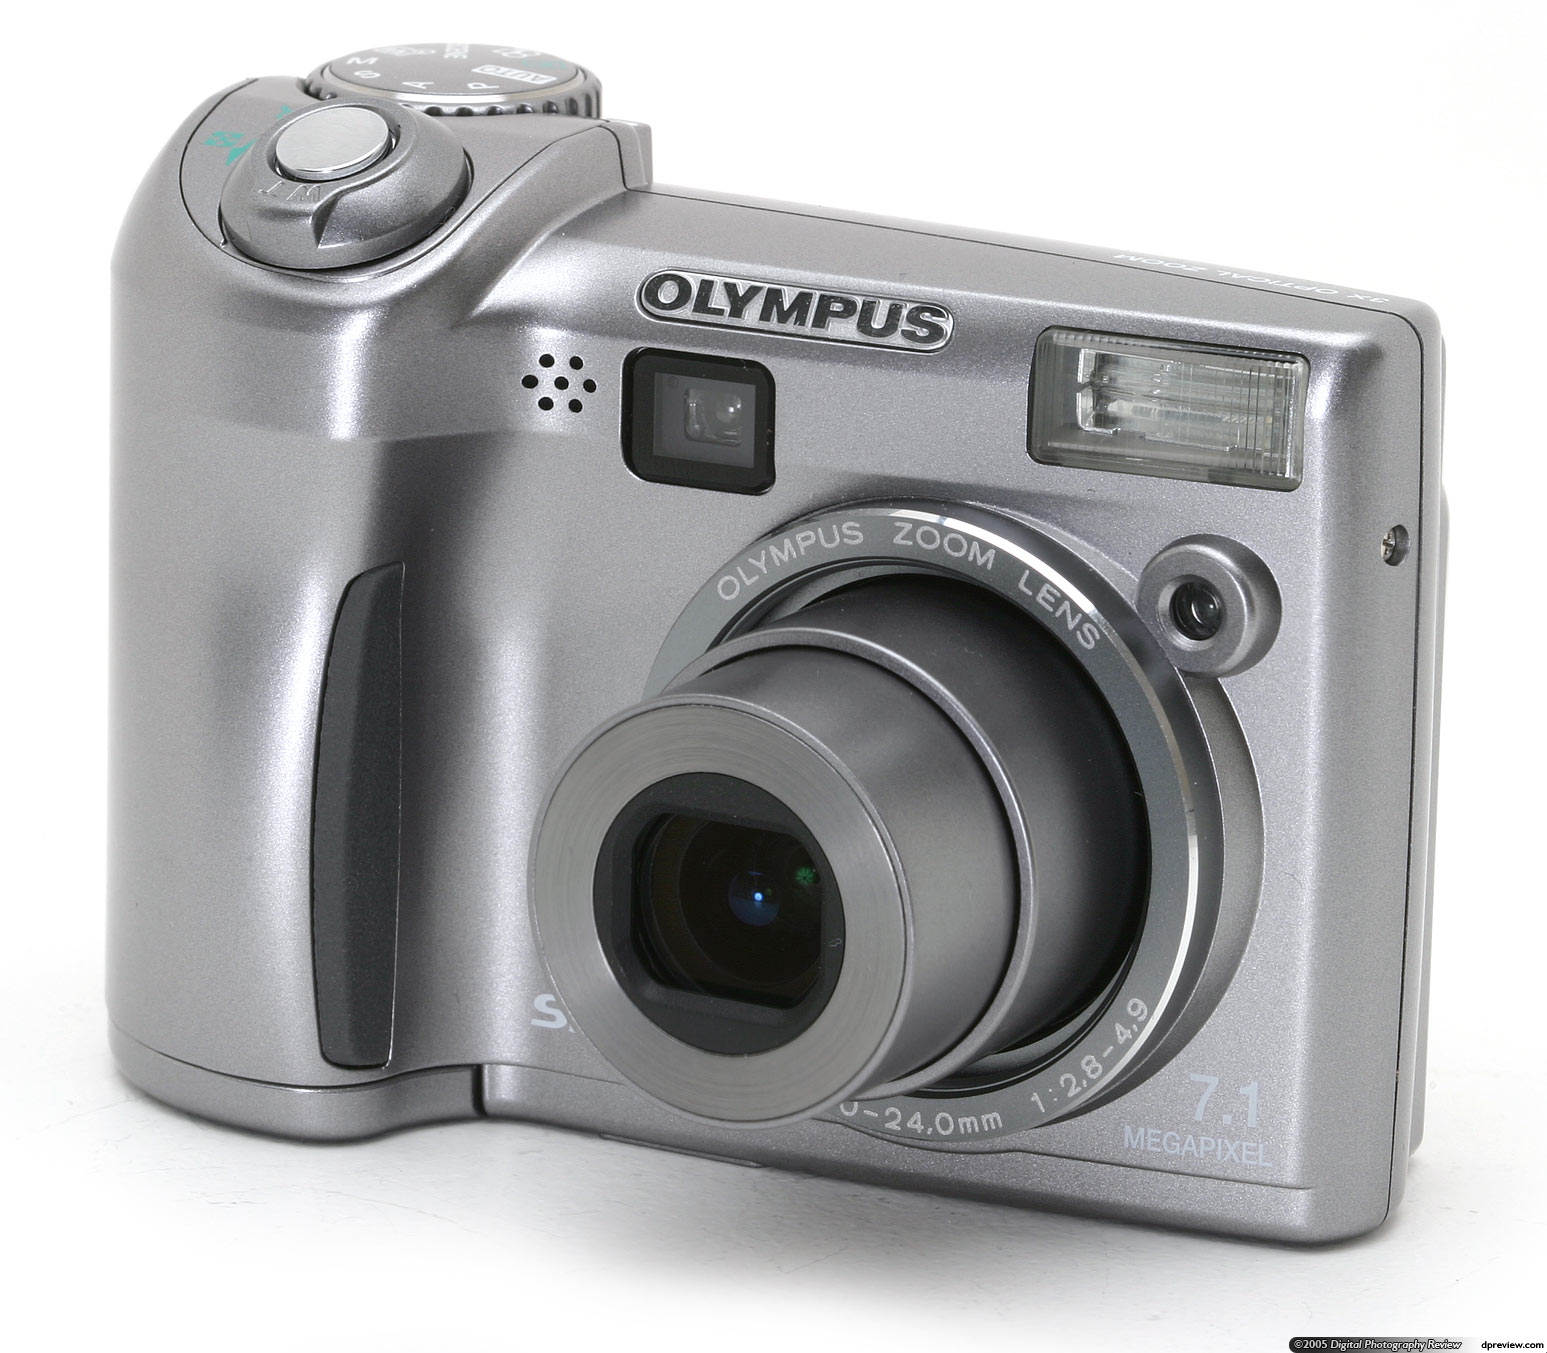 olympus sp 310 review digital photography review - Olympus Digital Camera